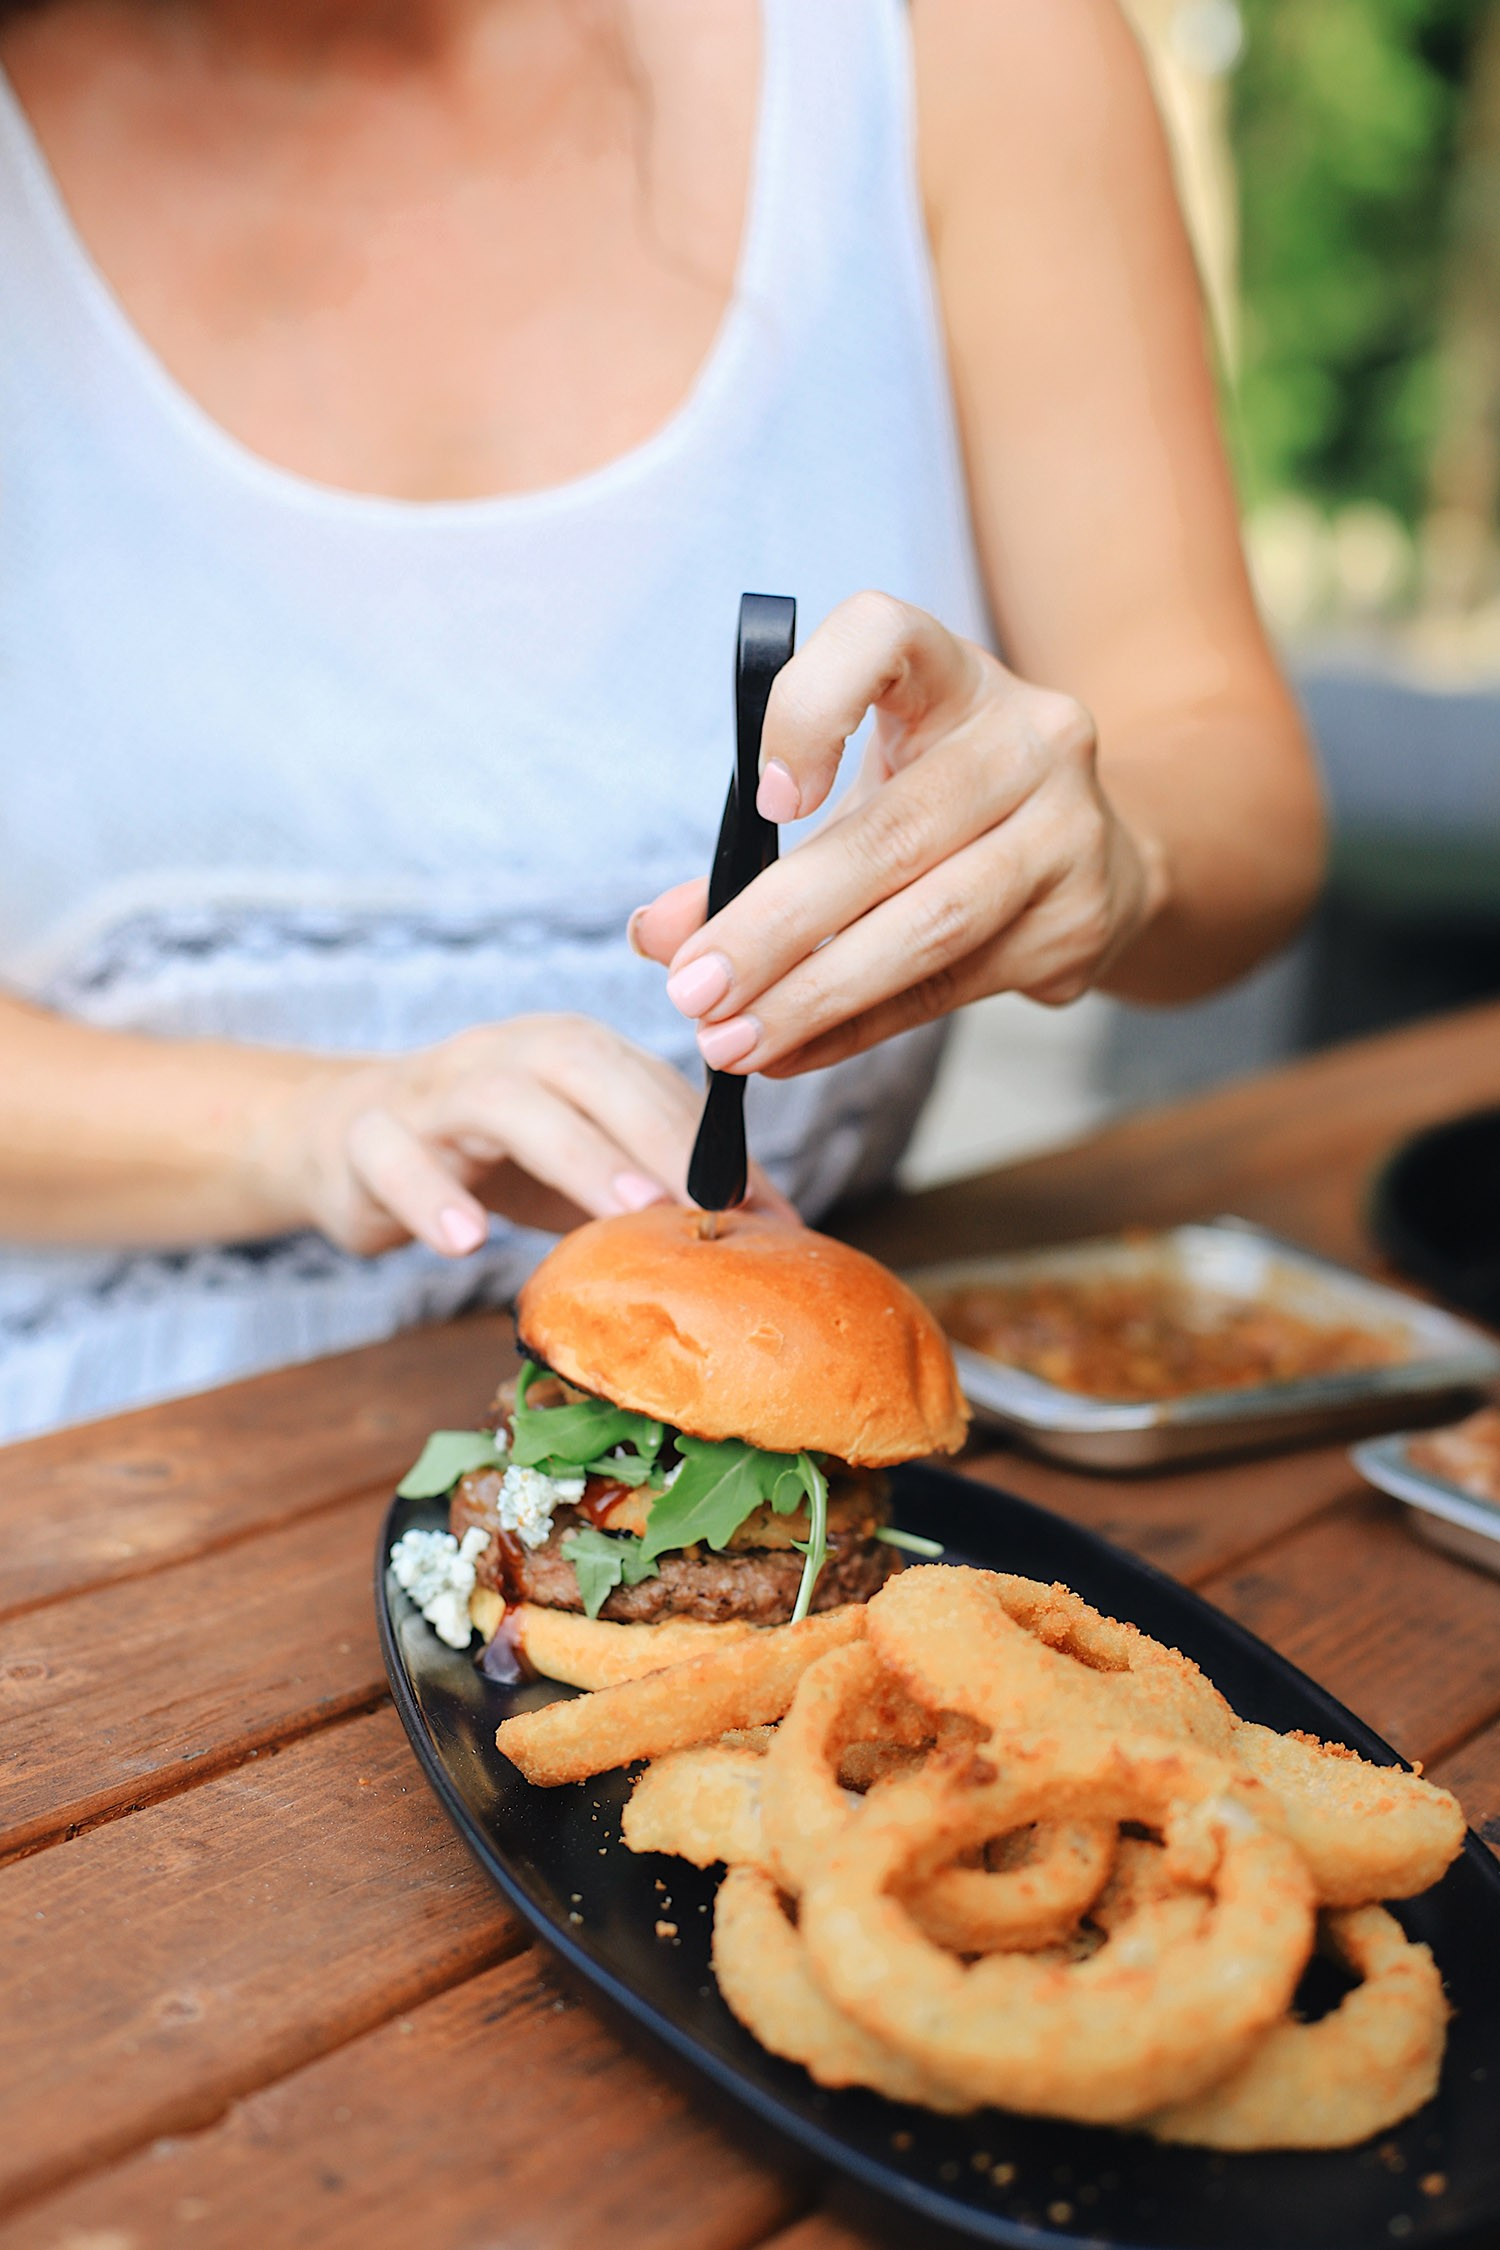 BBQ Bacon Blue Burger for a Tasty Backyard Barbecue. Not your average burger! Juicy beef burgers seasoned with a the perfect amount of spice, topped with smoked bacon jam, sweet bourbon onions, arugula, blue cheese, onion rings, BBQ sauce and a buttery grilled bun! | BBQ Burger by popular Florida lifestyle blog, Fresh Mommy Blog: image of a BBQ Burger with bacon and blue cheese.